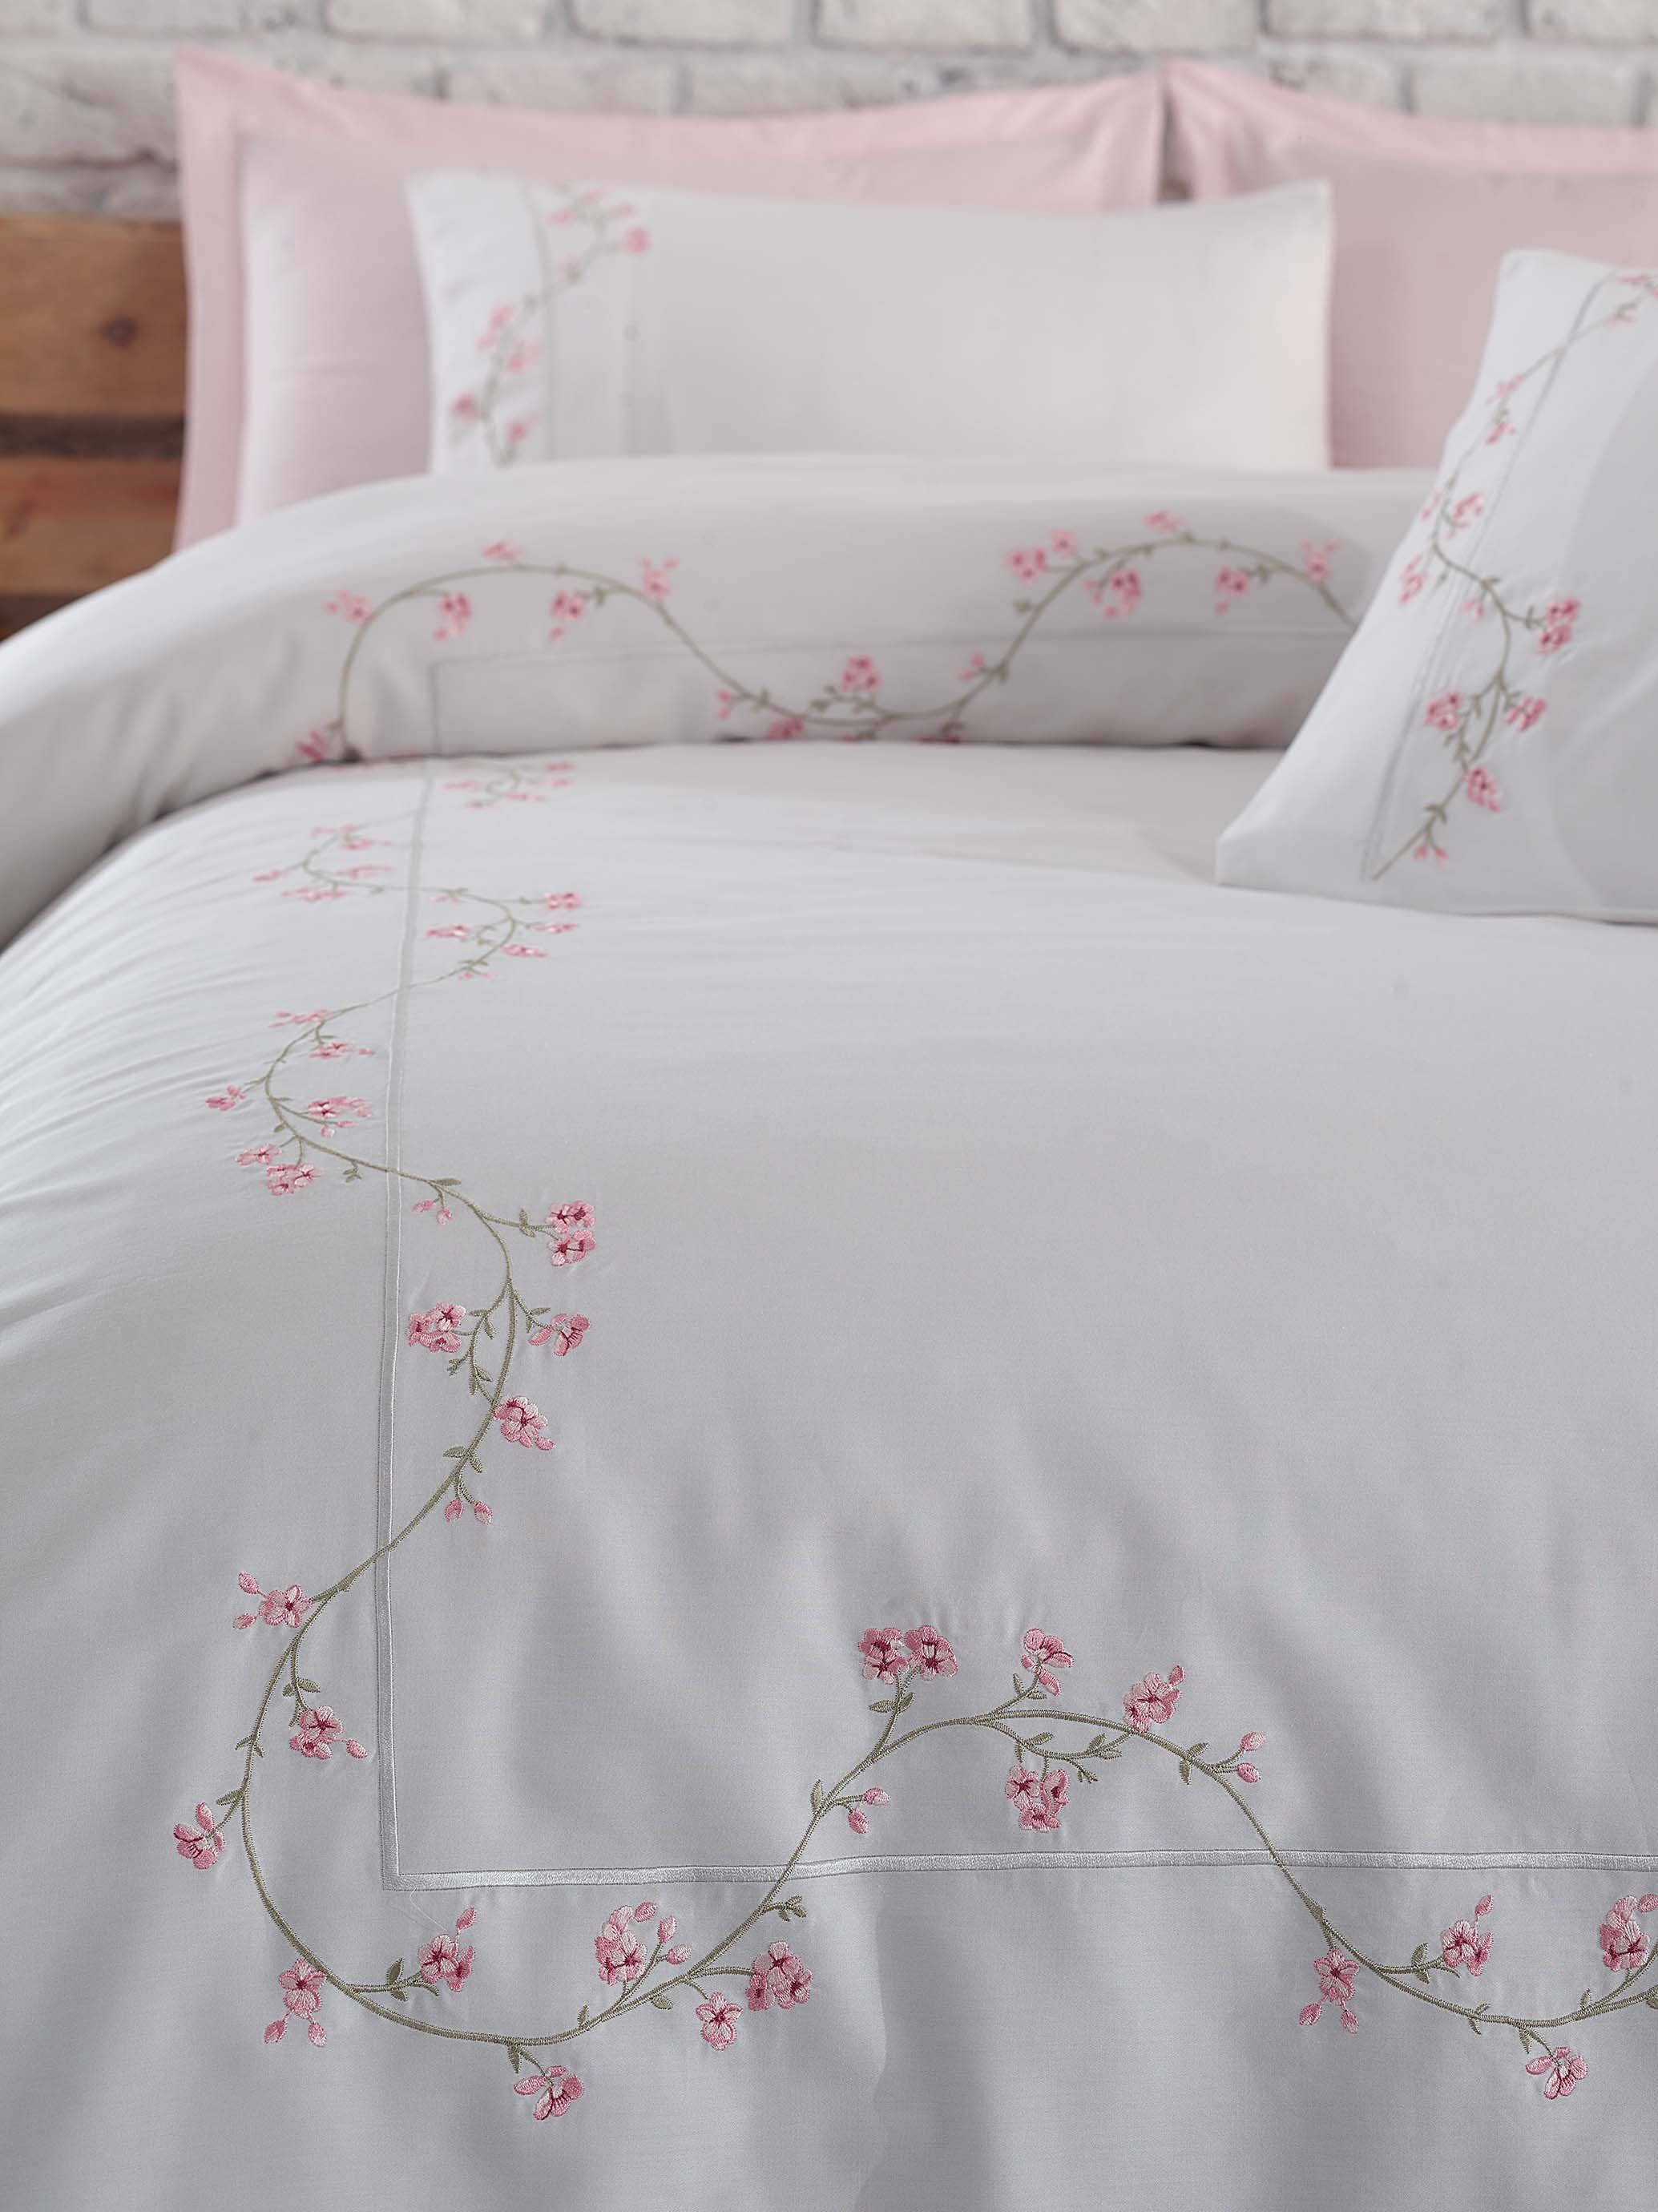 FINE SATIN COTTON DUVET COVER SET WITH EMBROIDERY DESIGN - COTTONISH